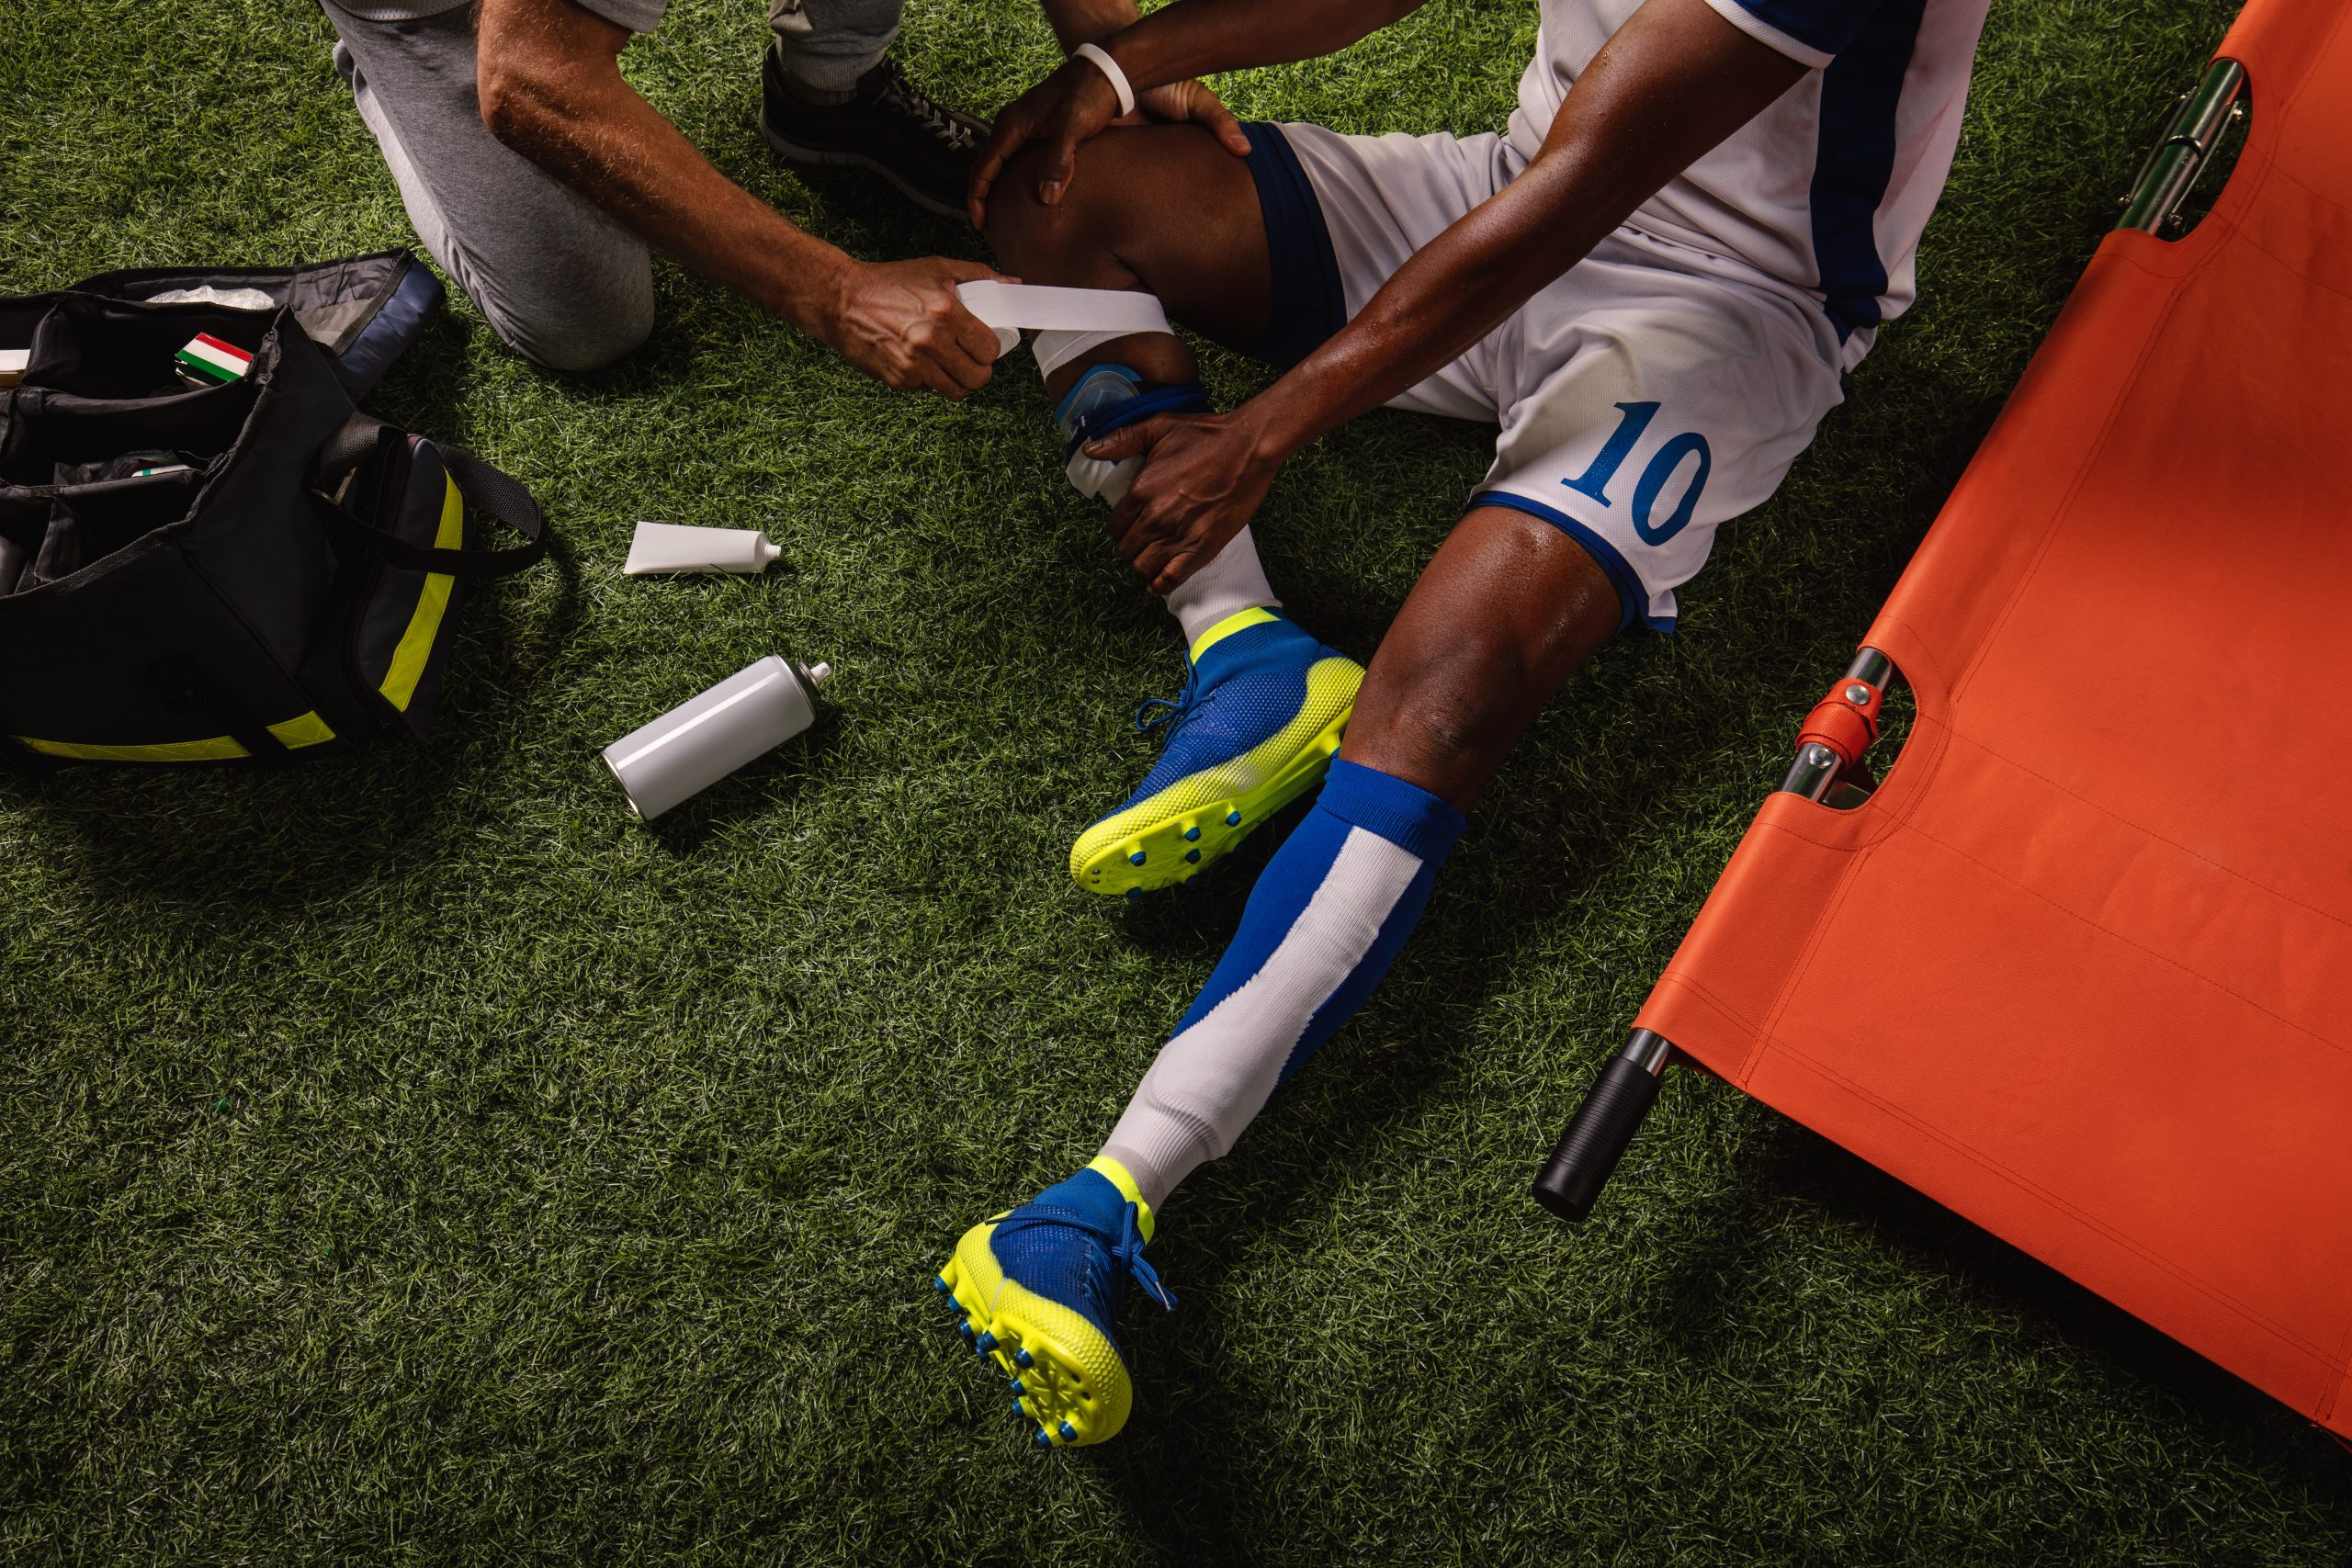 Soccer player injured knee during the game. Sport Doctors provide first aid to player on a professional football field